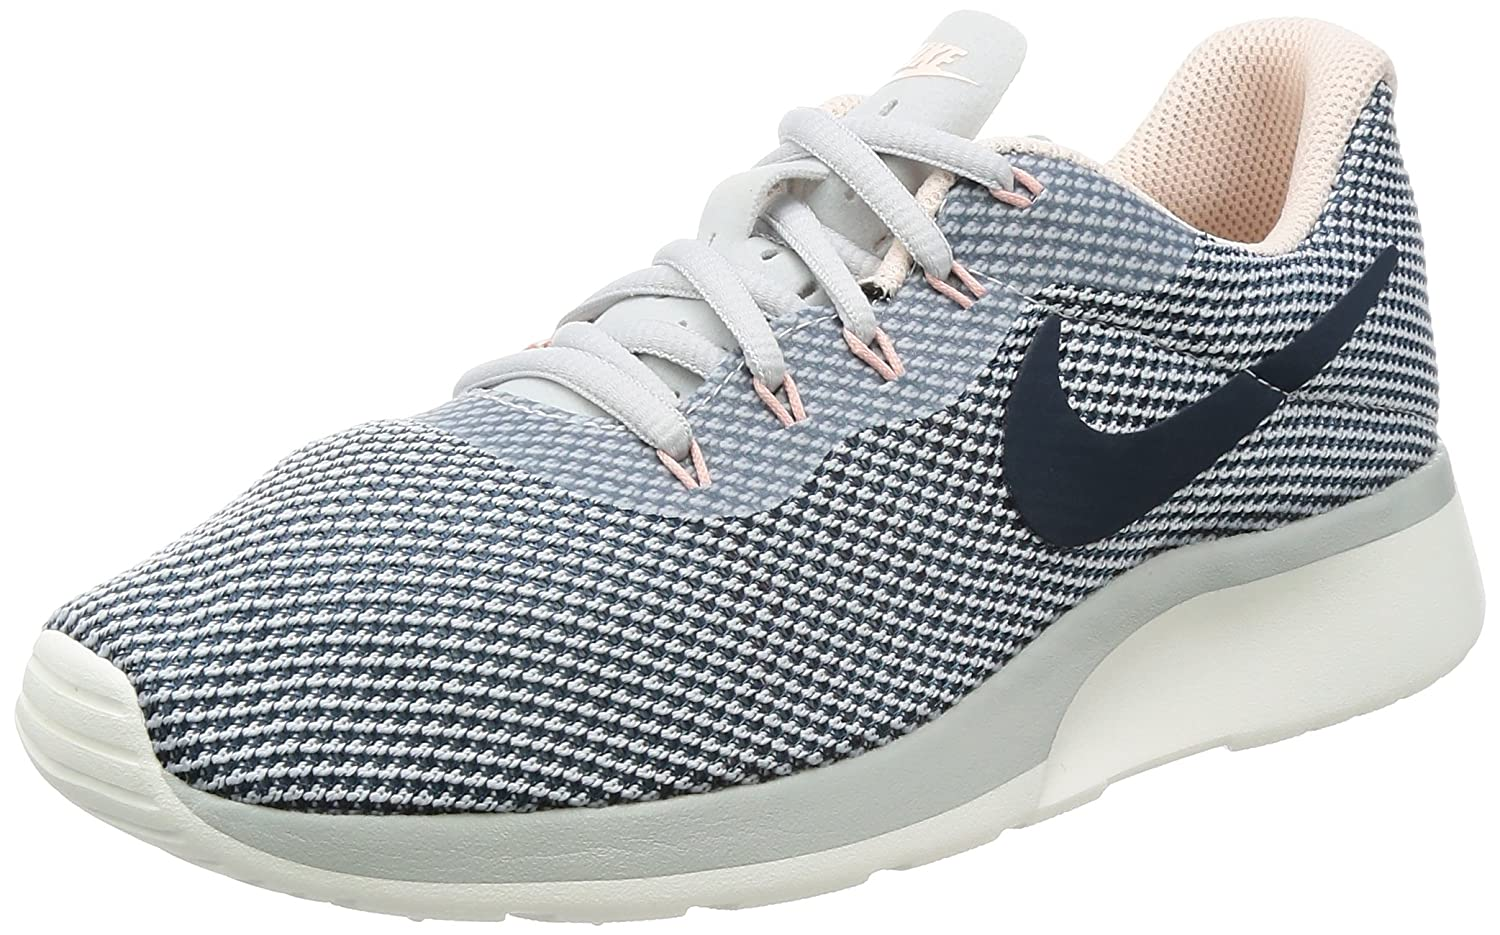 NIKE Women's Tanjun Running Shoes B01M2BT8I8 6 B(M) US|Pure Platinum/Armory Navy/Armory Blue